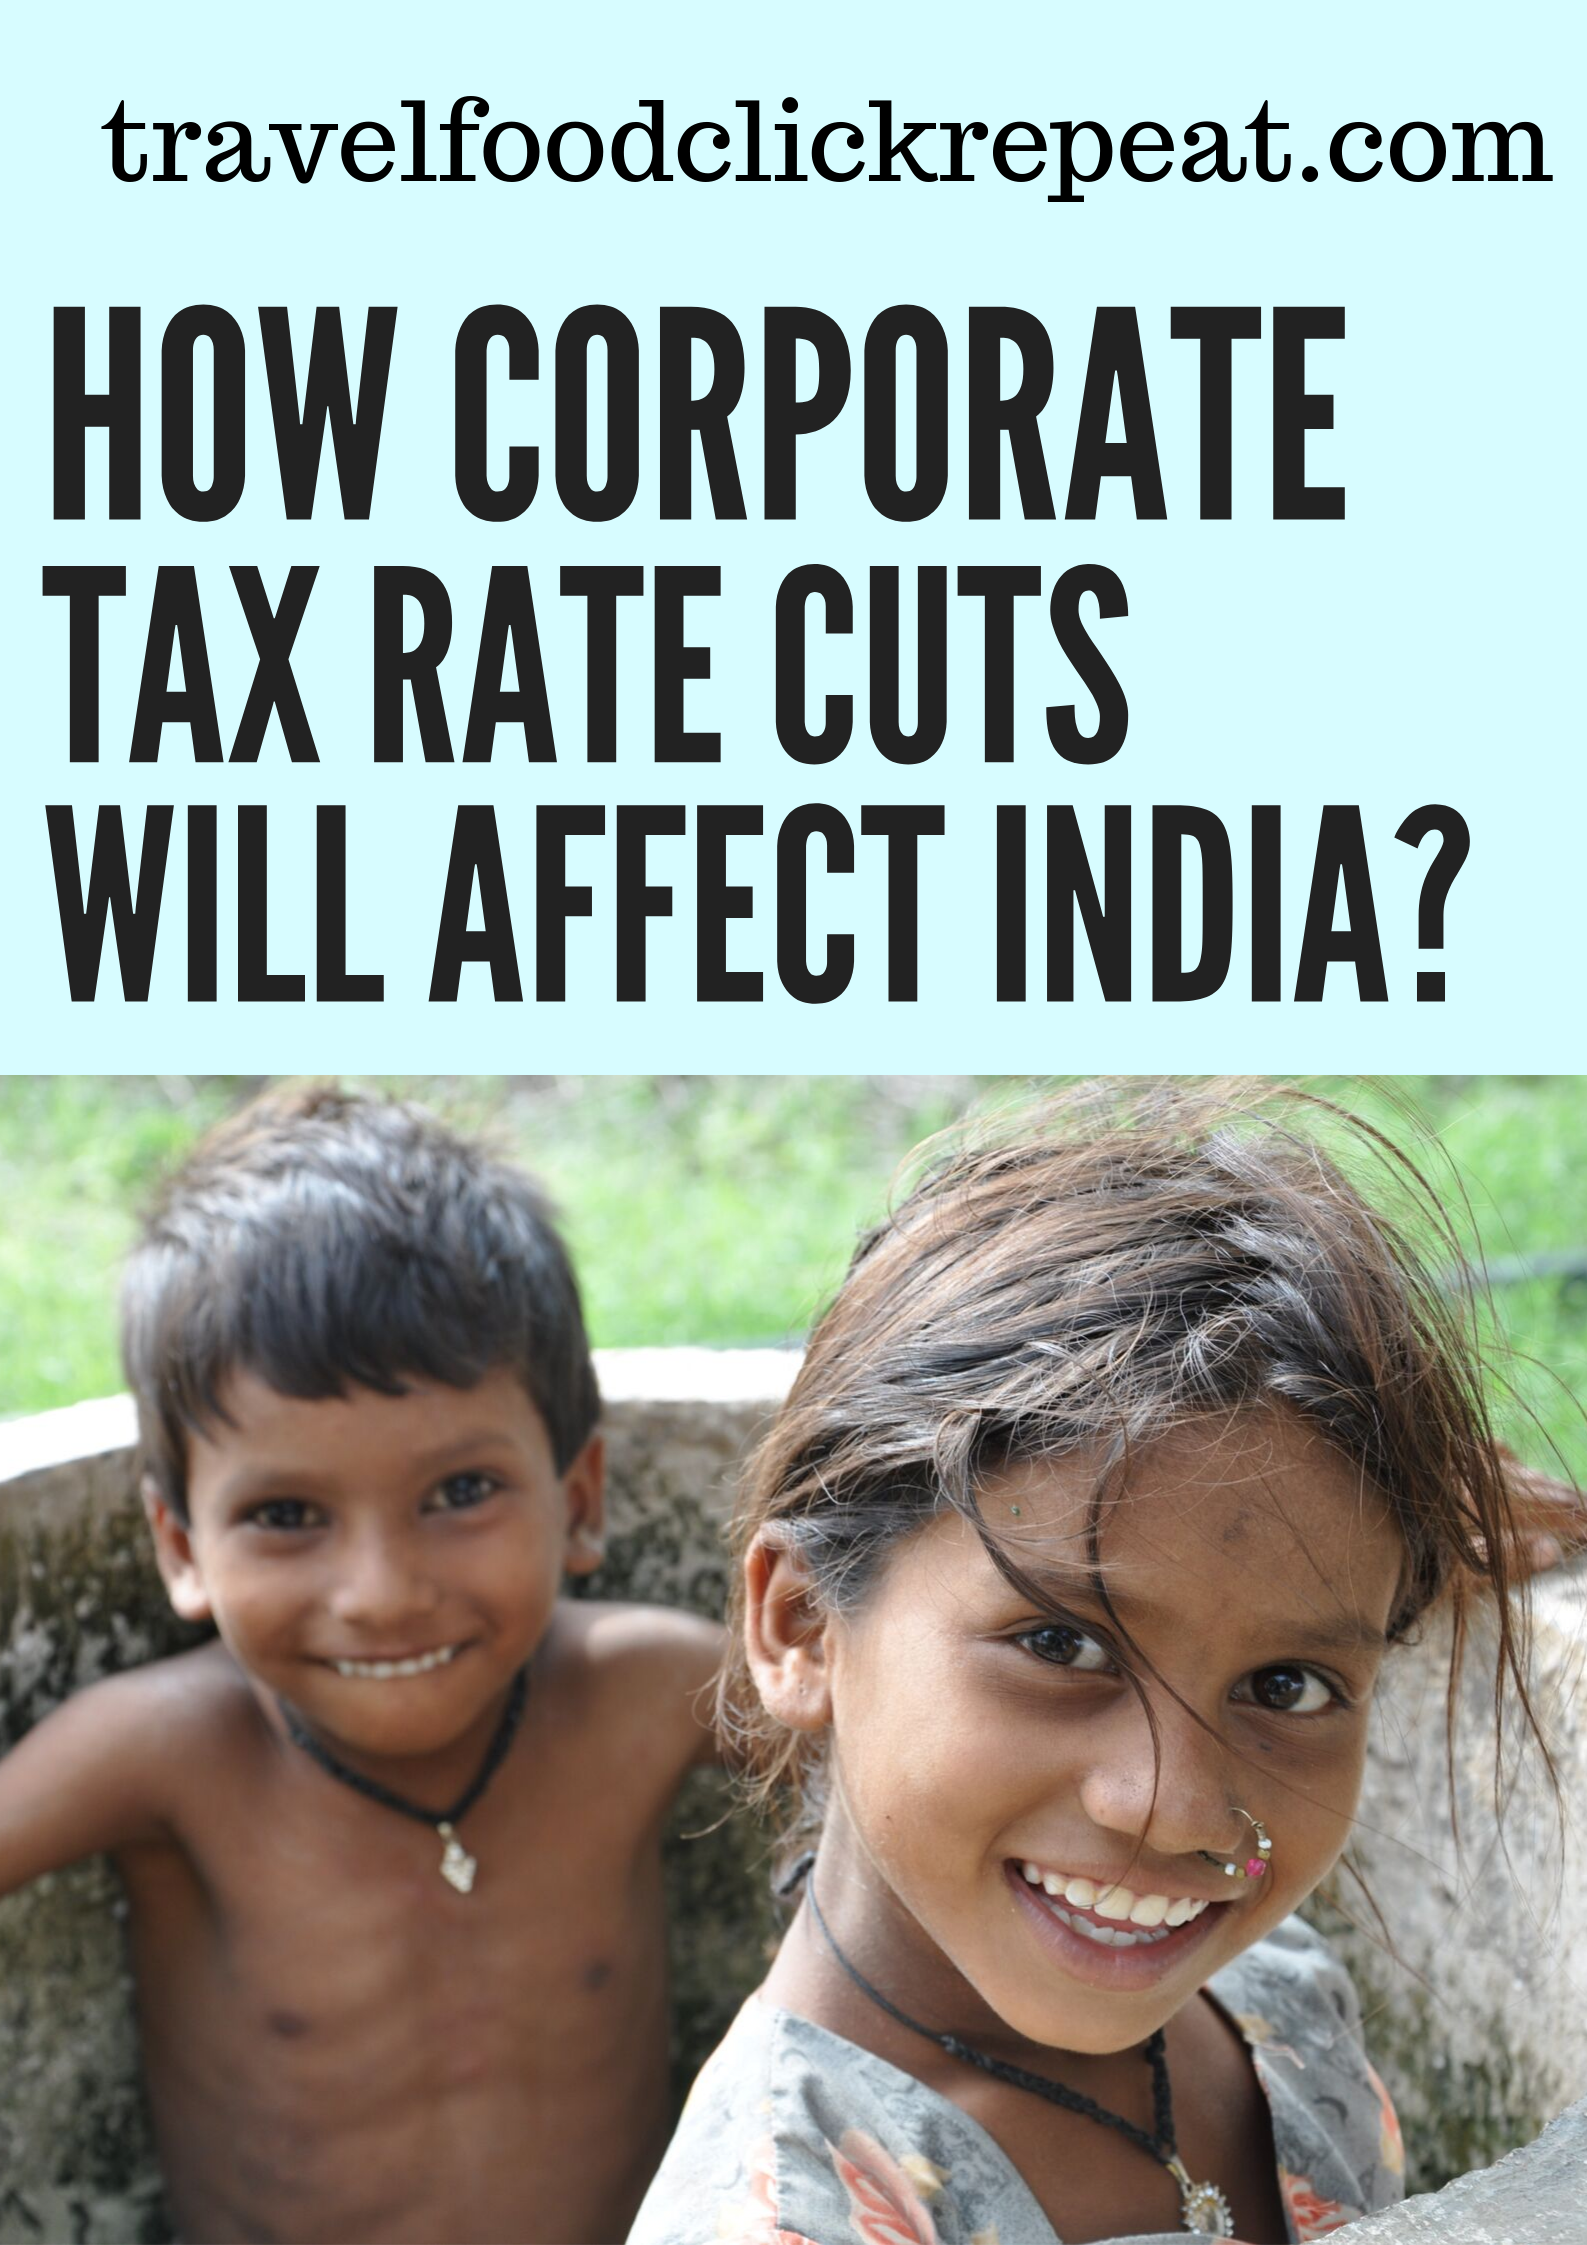 corporate tax rate cuts will affect India